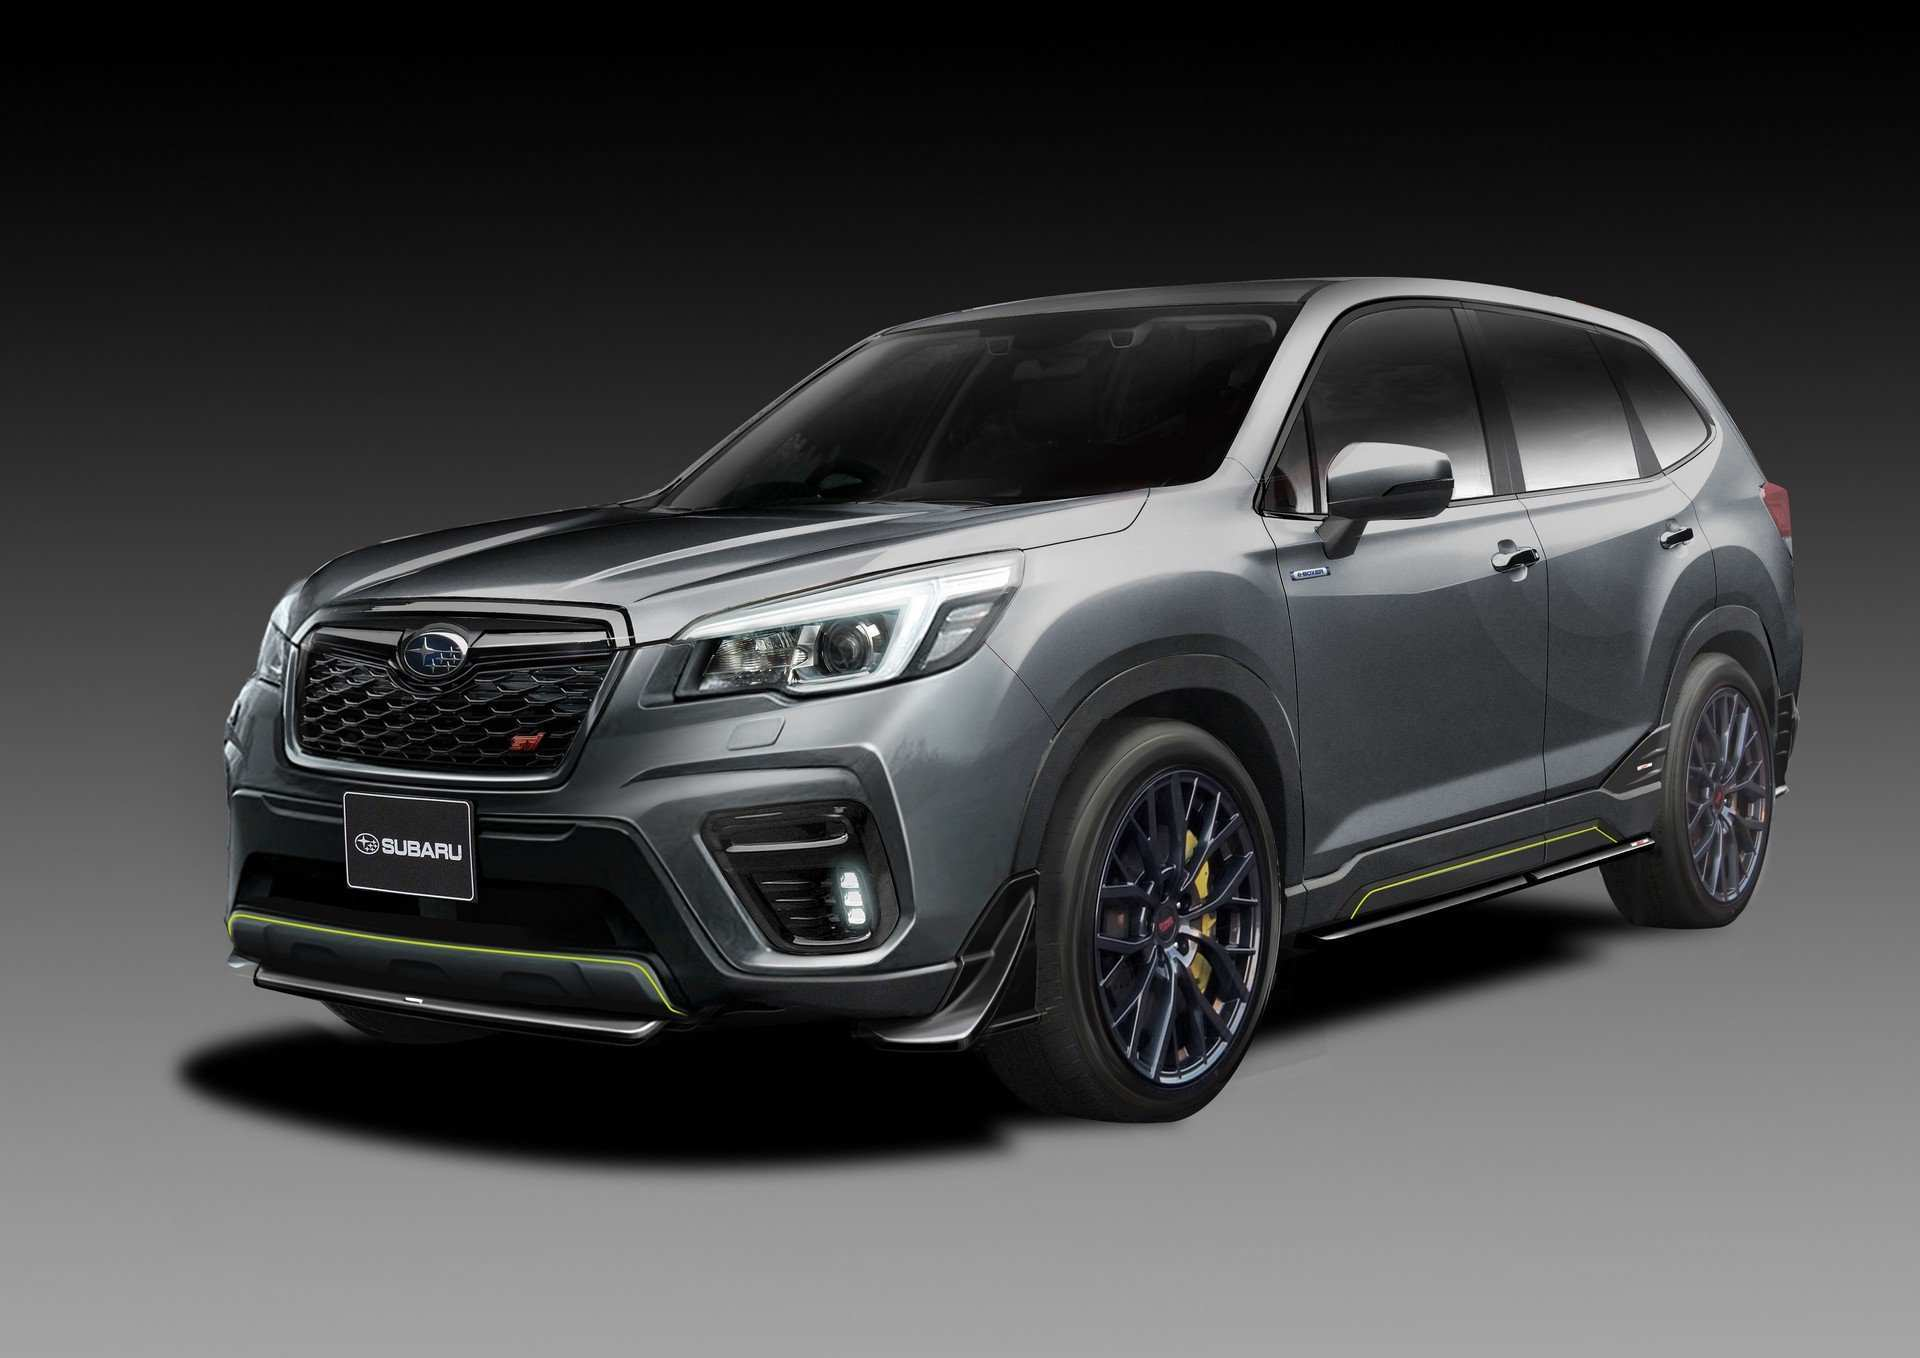 21 The Best 2020 Subaru Forester Concept